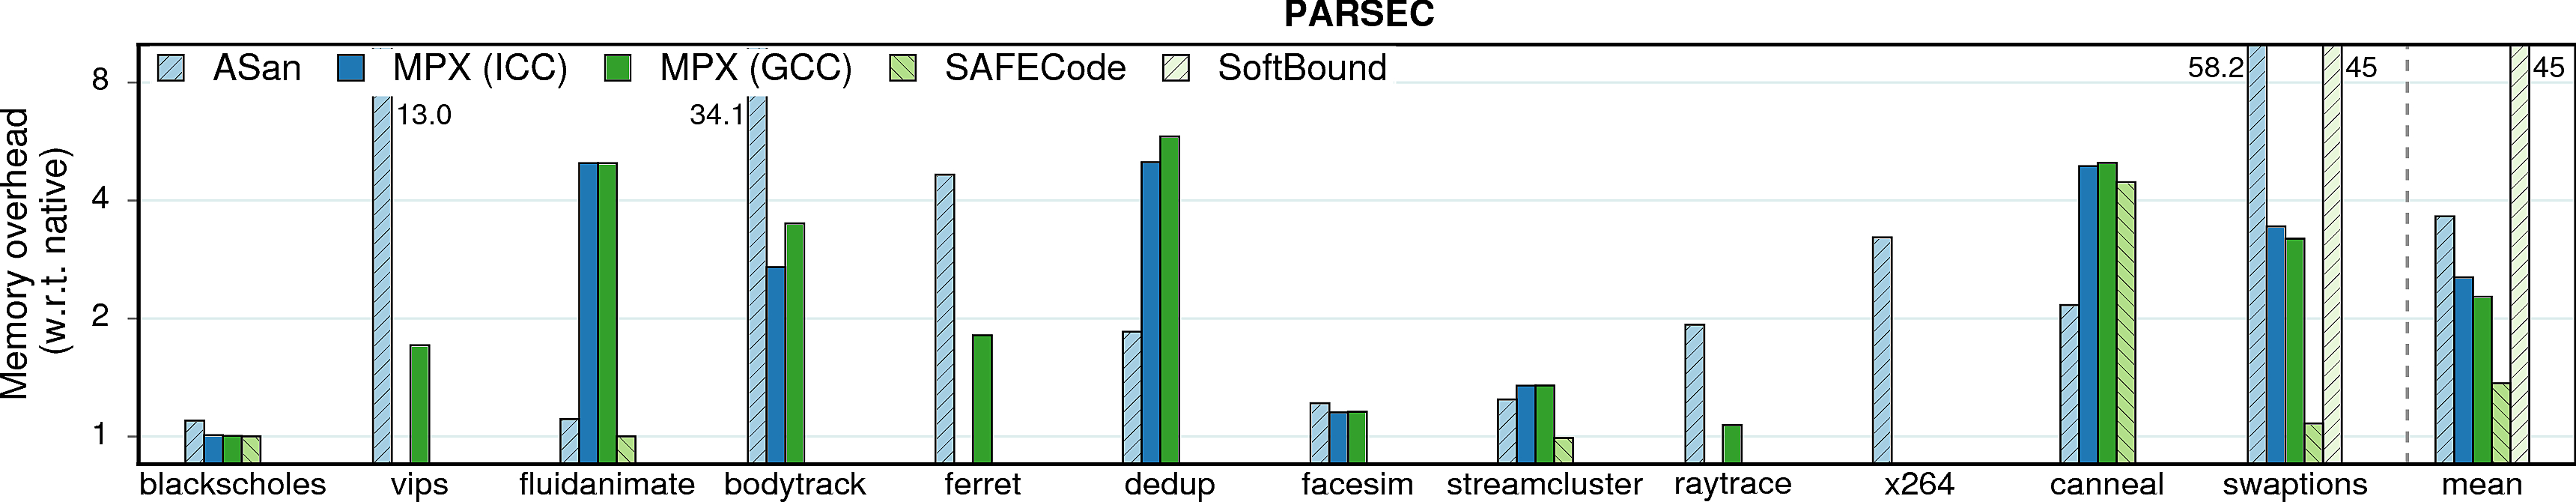 Memory consumption overheads of PARSEC